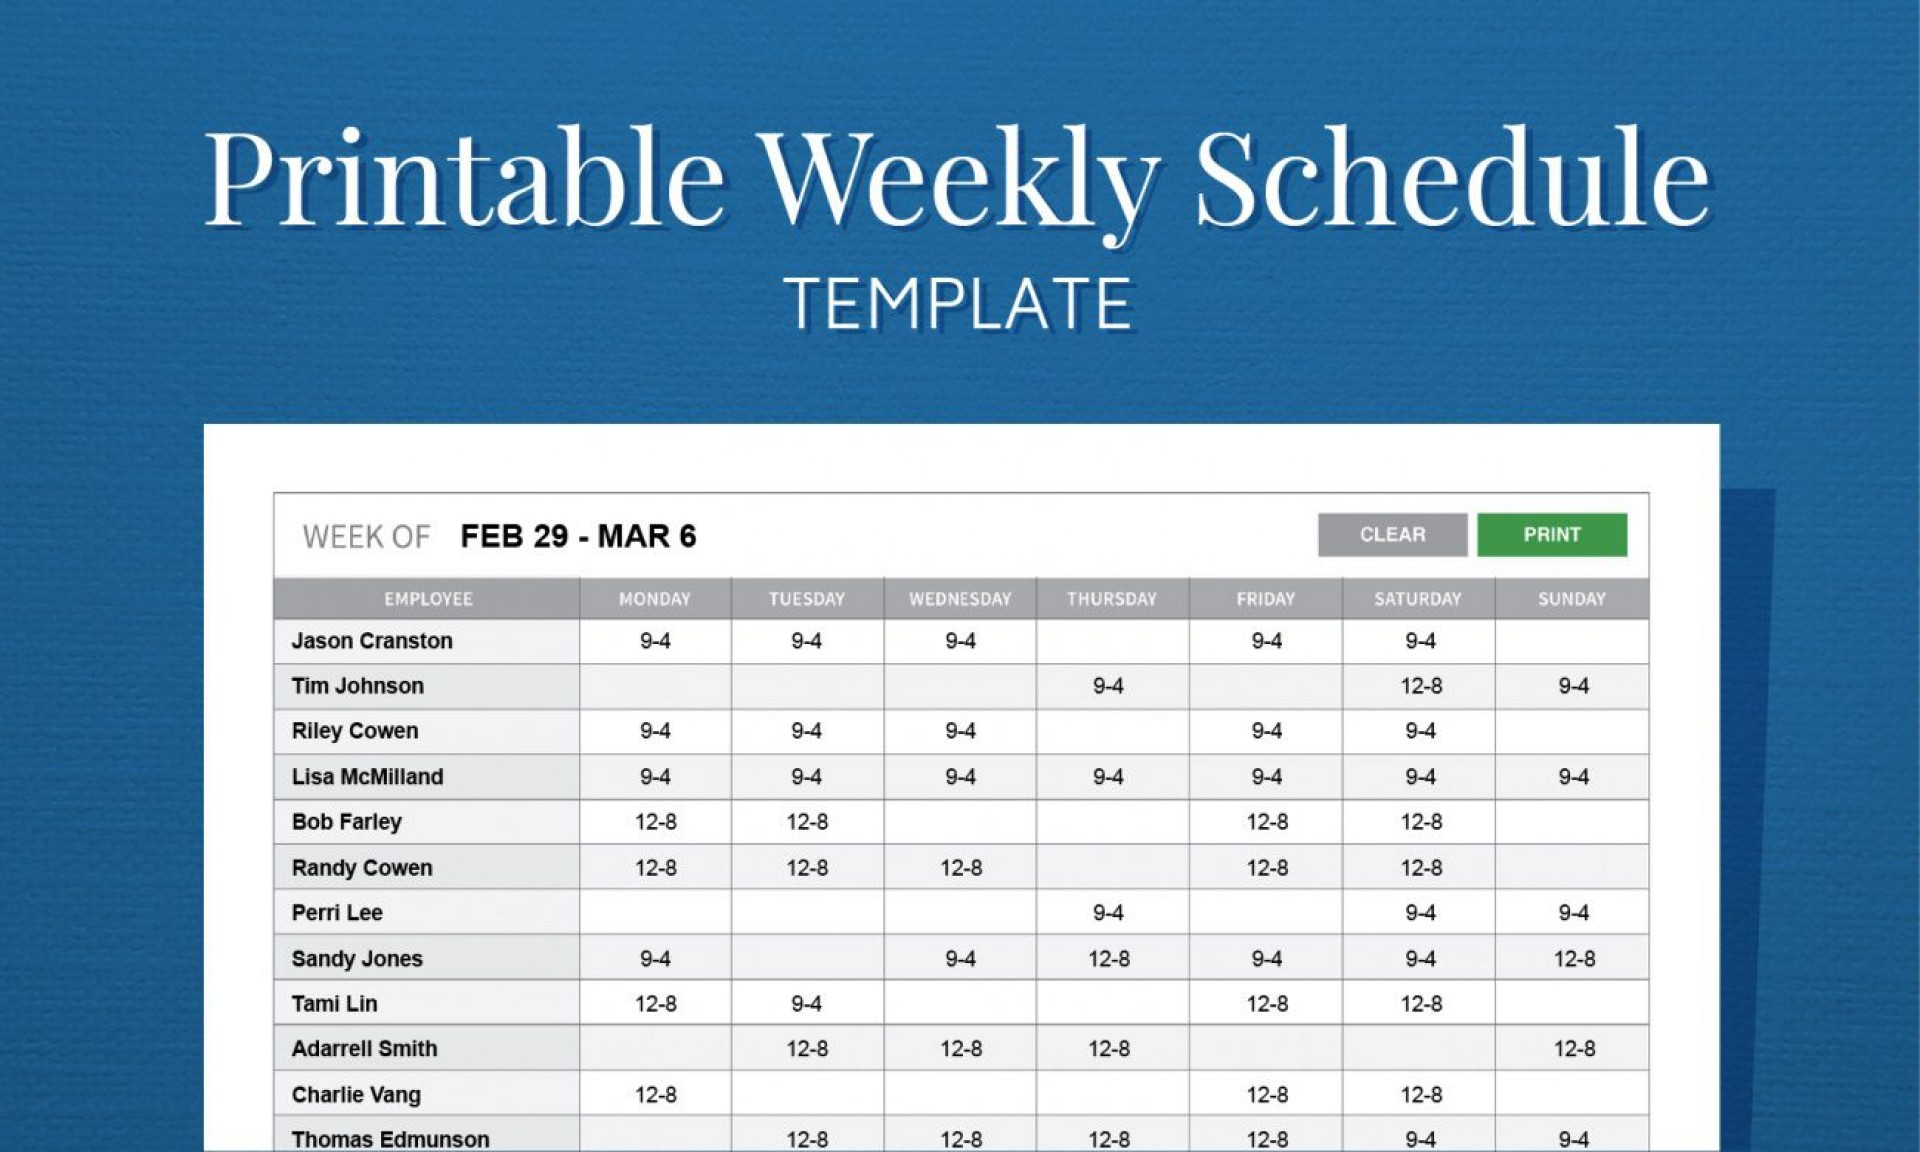 005 Fantastic Free Employee Scheduling Template Concept  Templates Weekly Work Schedule Printable Lunch1920